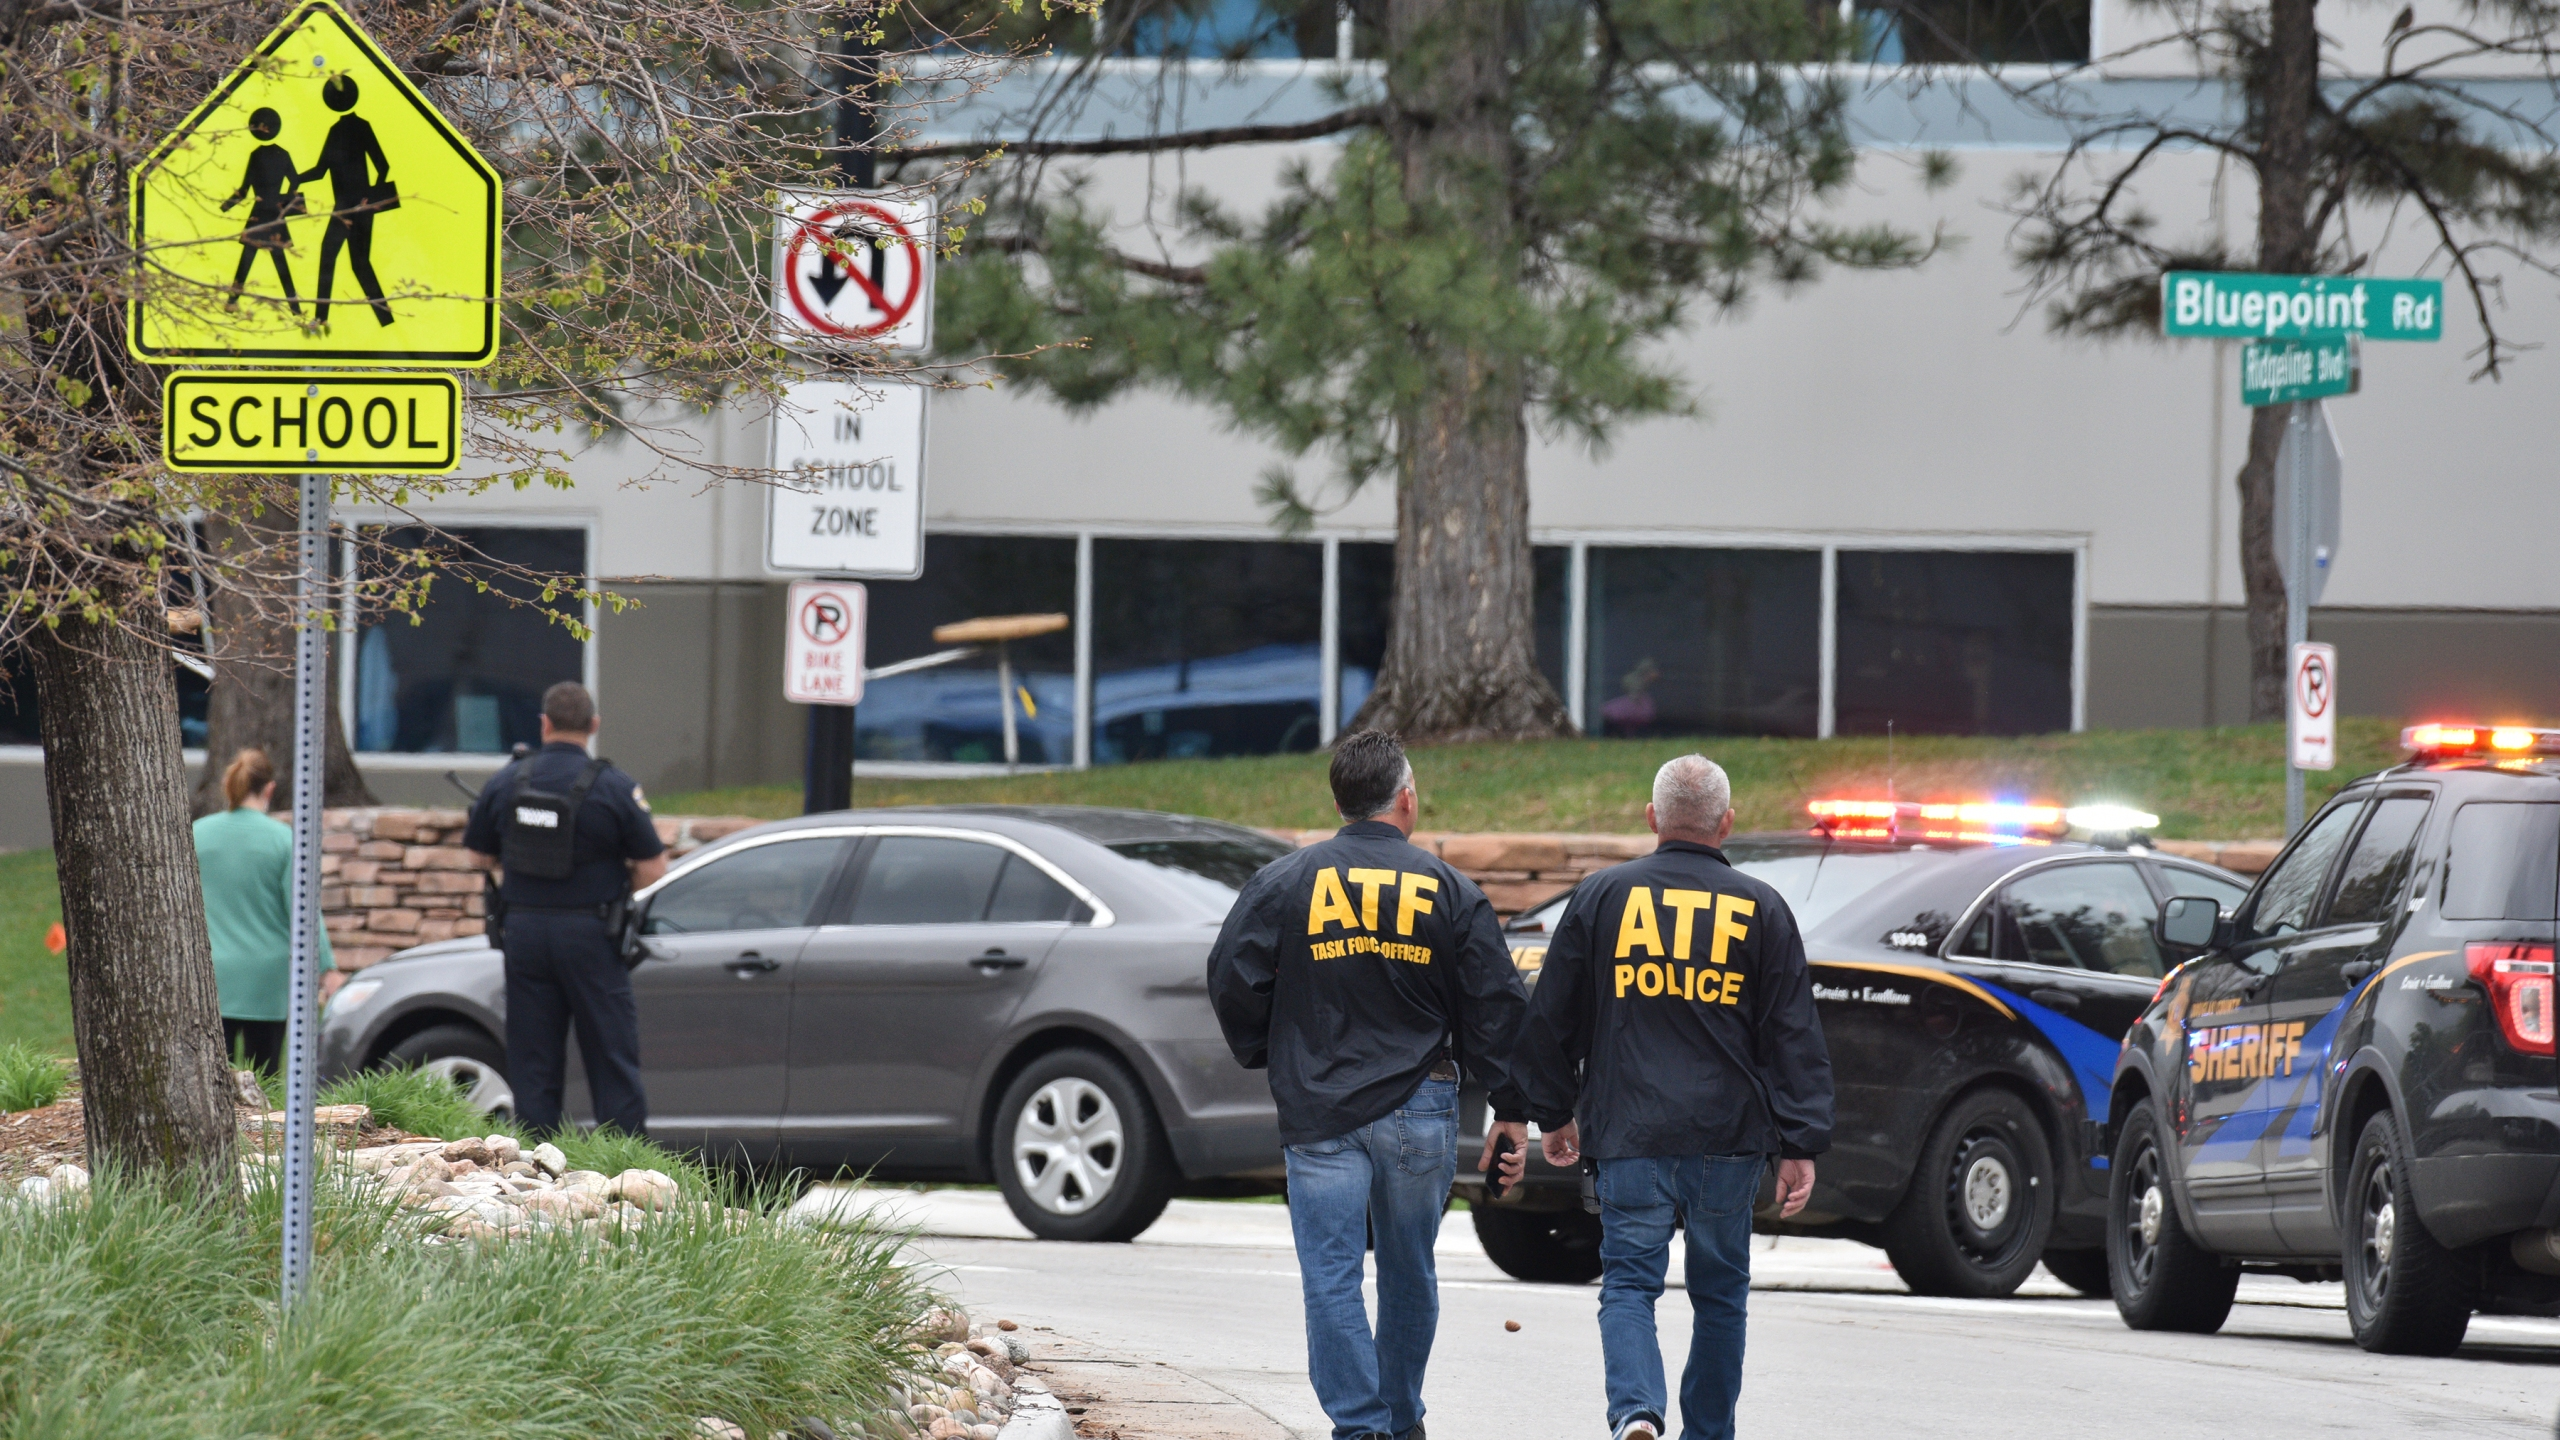 ATF officers walk arrive on the scene of a shooting at the STEM School Highlands Ranch on May 7, 2019 in Highlands Ranch, Colorado. (Credit: Tom Cooper/Getty Images)